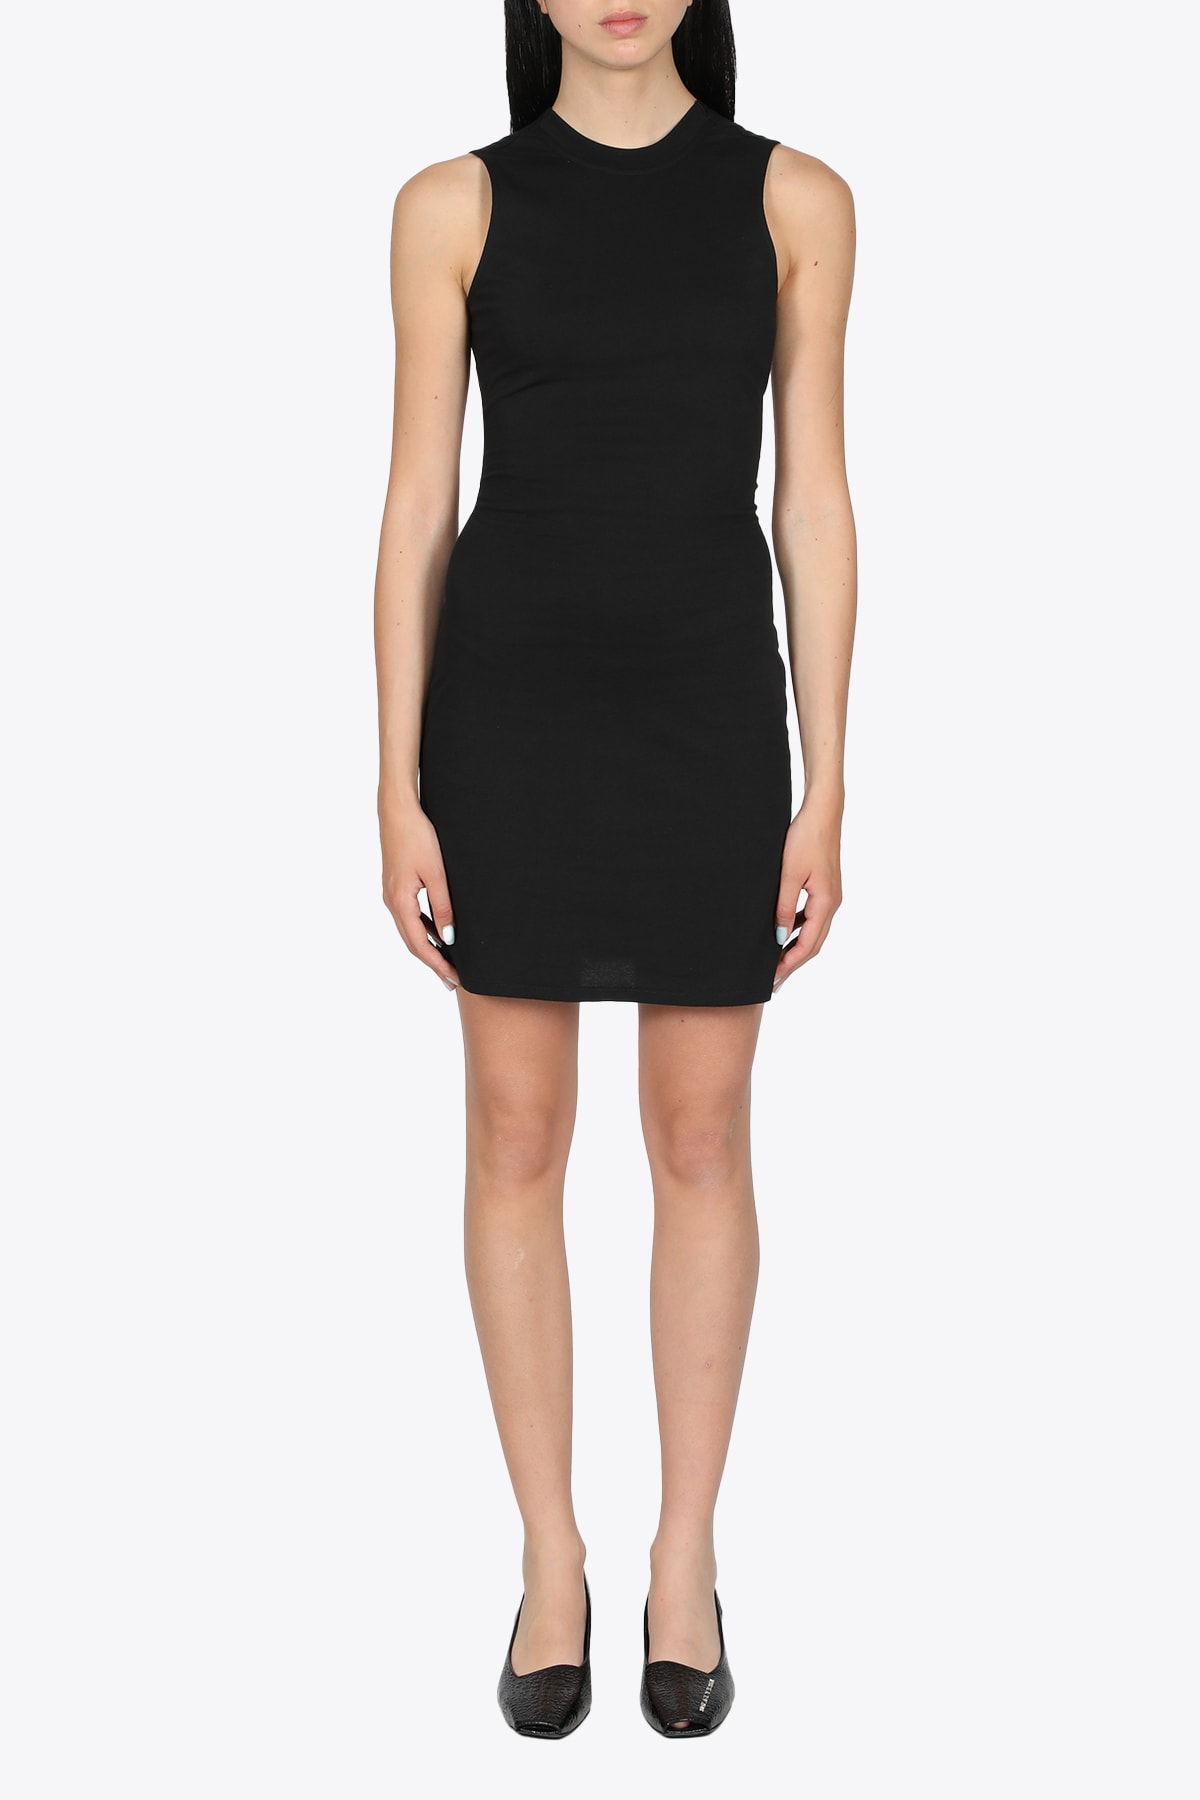 Buy 1017 ALYX 9SM Cut Out T-shirt Tank Dress online, shop 1017 ALYX 9SM with free shipping